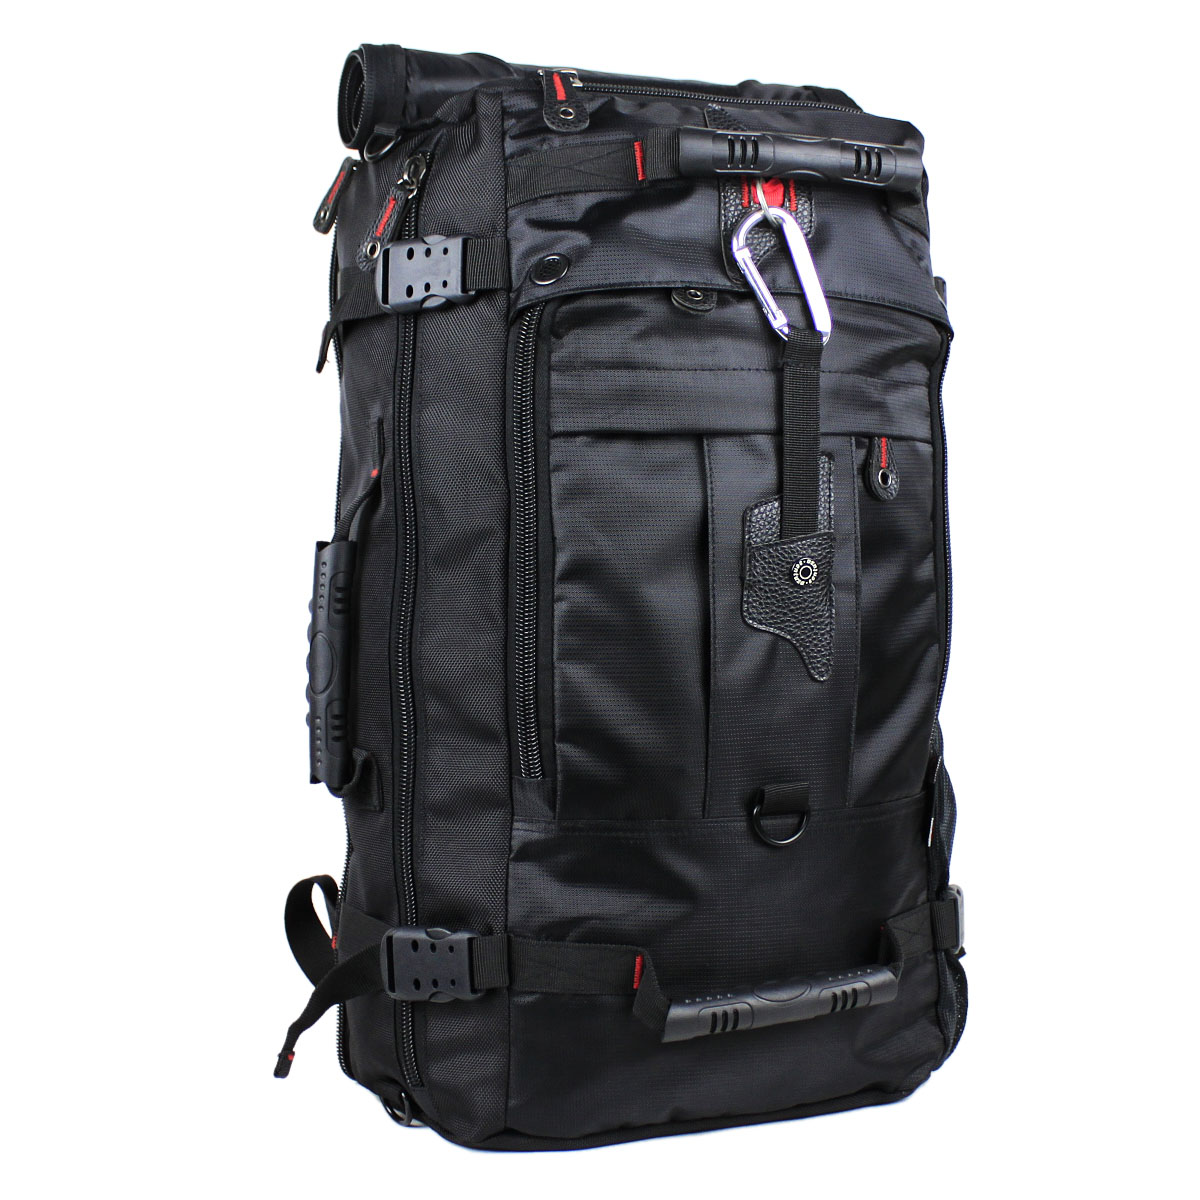 Travel Backpack Reviews 9UsZsTME